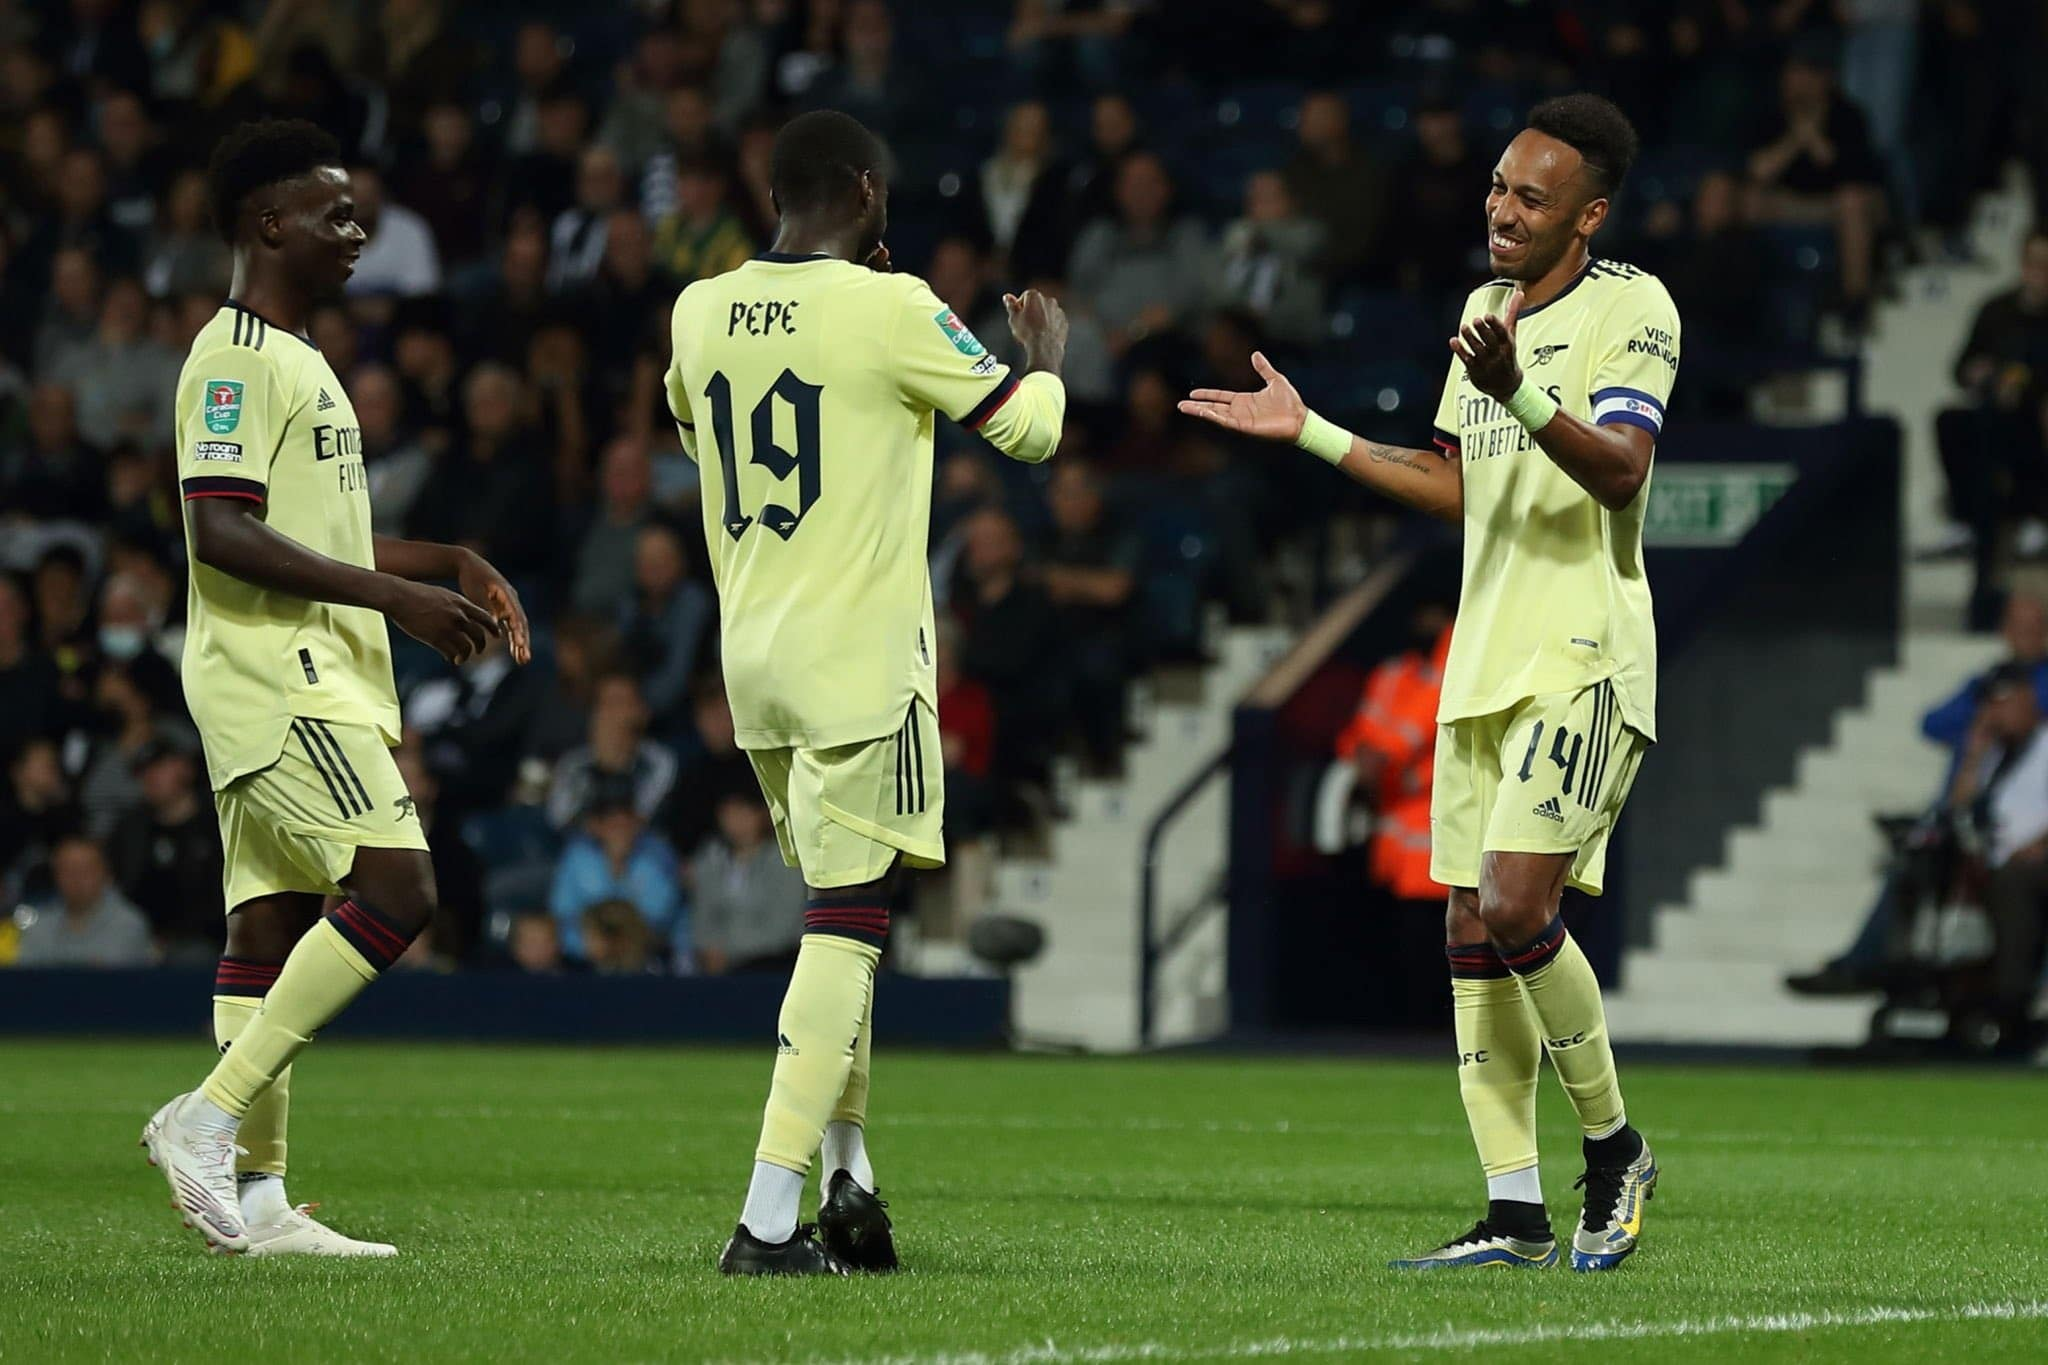 Carabao Cup: Aubameyang Bags Hat-trick As Struggling Arsenal Thrash Ajayi's West Brom 6-0